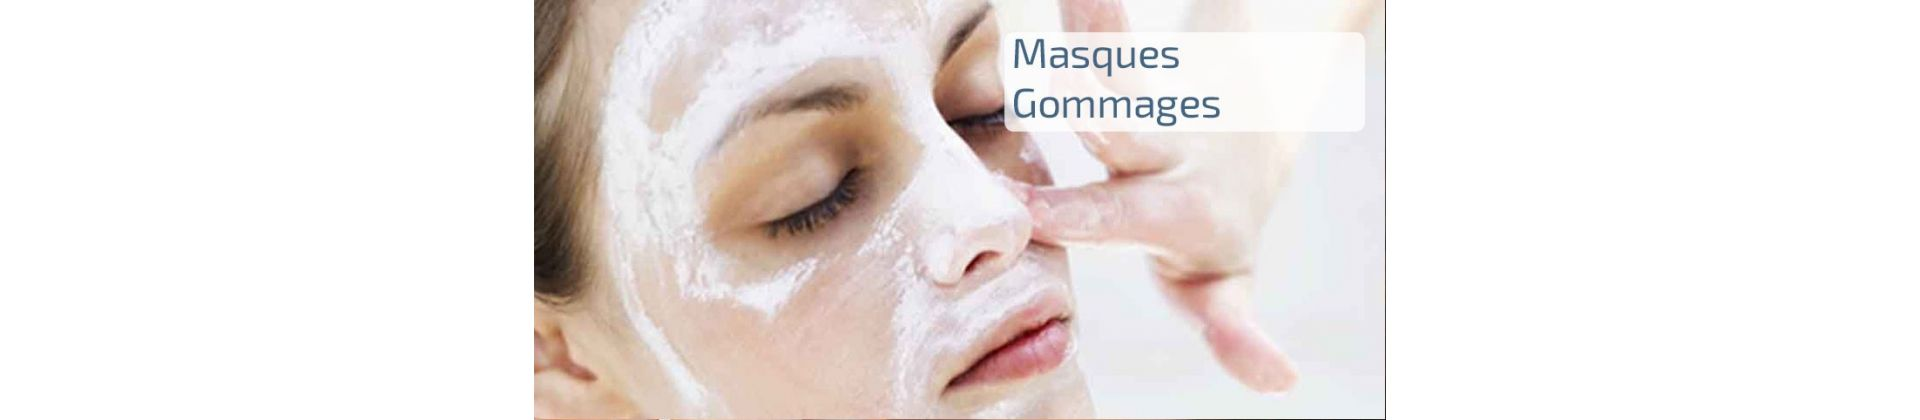 Gommage & Masques